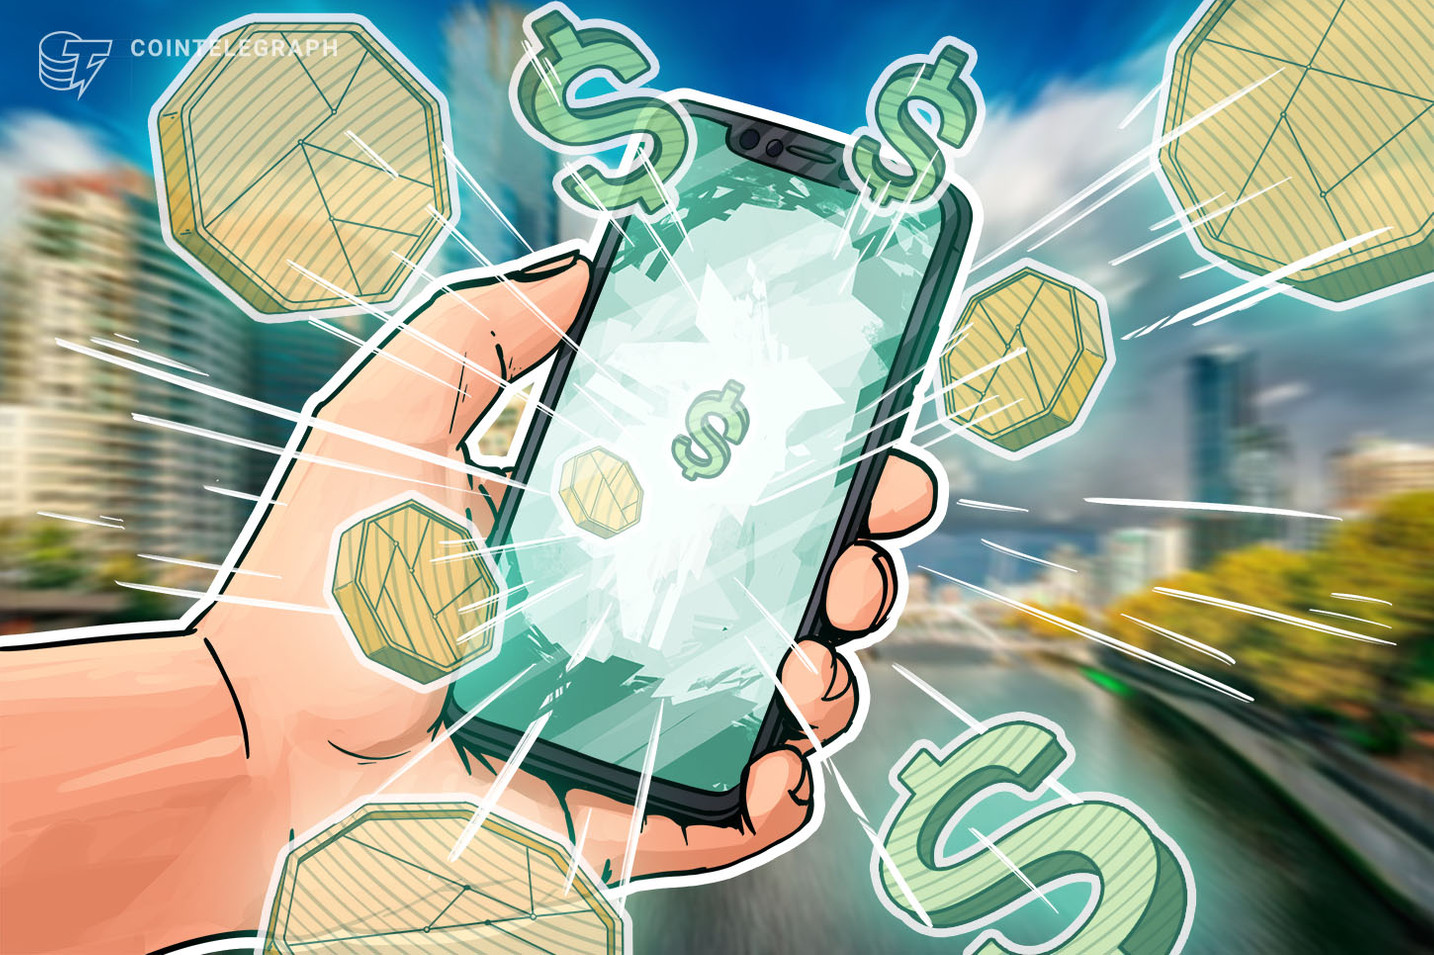 Coinsquare launches Quick Trade mobile app with instant funding